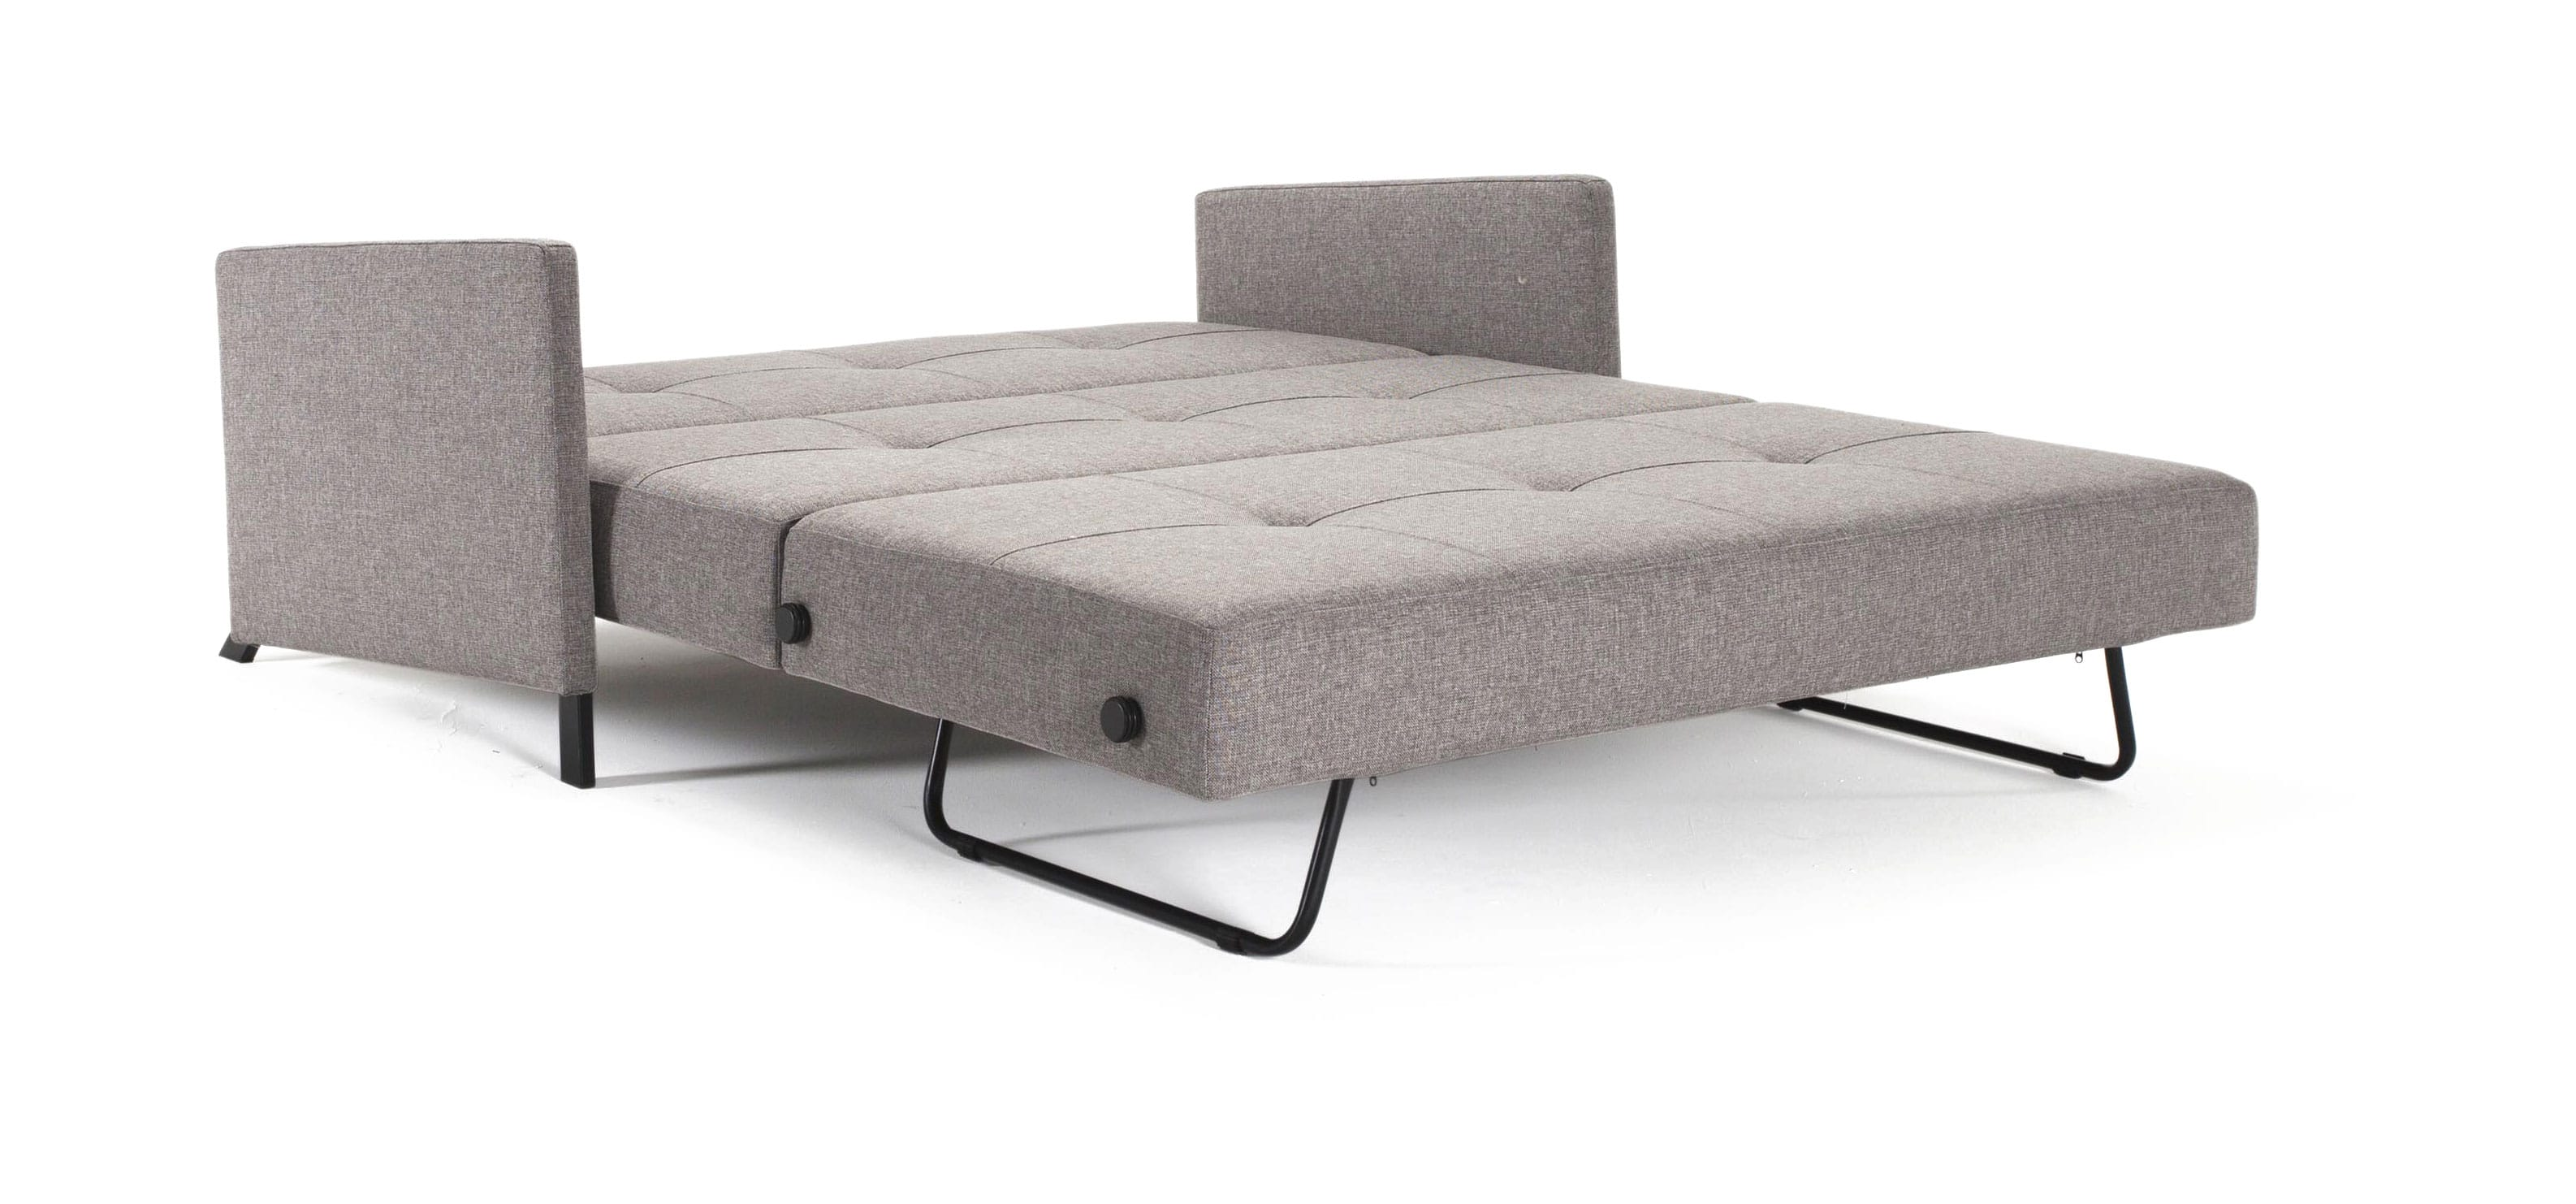 Cubed Deluxe Sofa Bed w Arms Full Size Mixed Dance Gray by